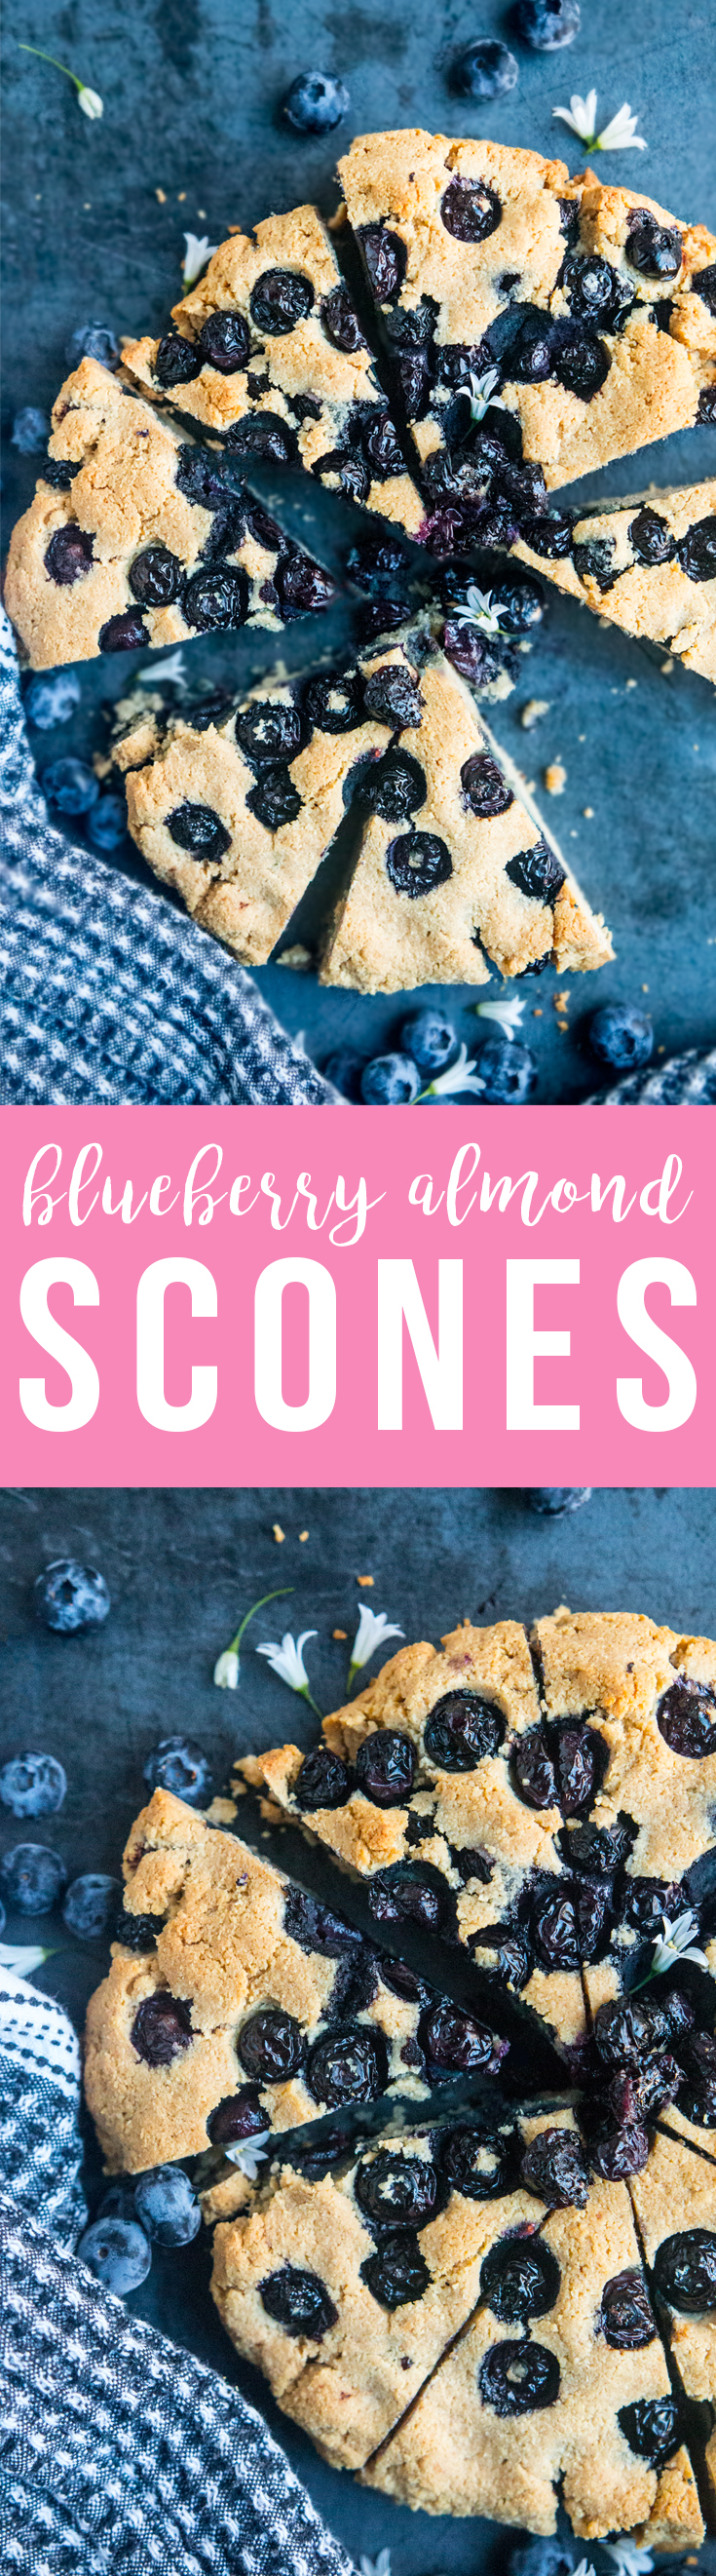 How to snack like a low-carb pro? Meet these Blueberry Almond Scones, made with nuts and eggs, plus the best-tasting ghee and stevia!